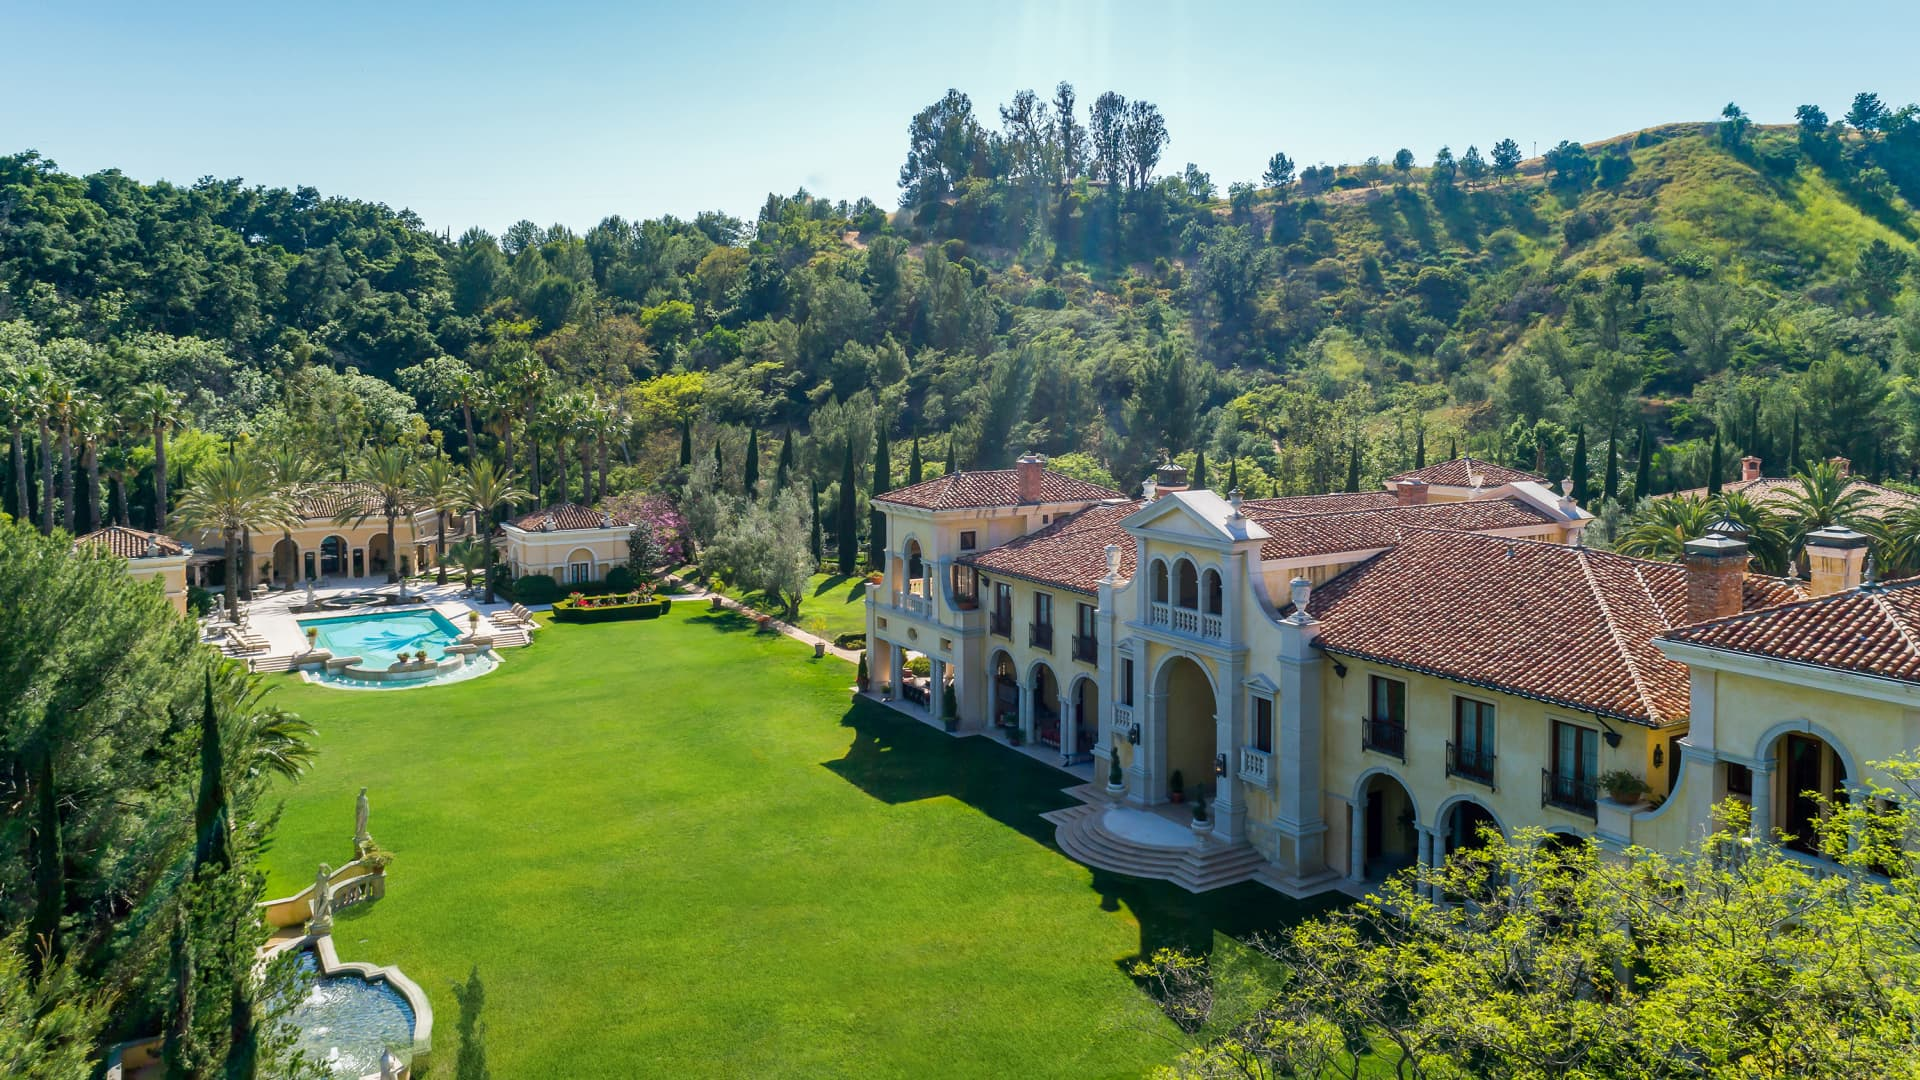 An aerial view of the grounds of Villa Firenze in Beverly Hills, California.